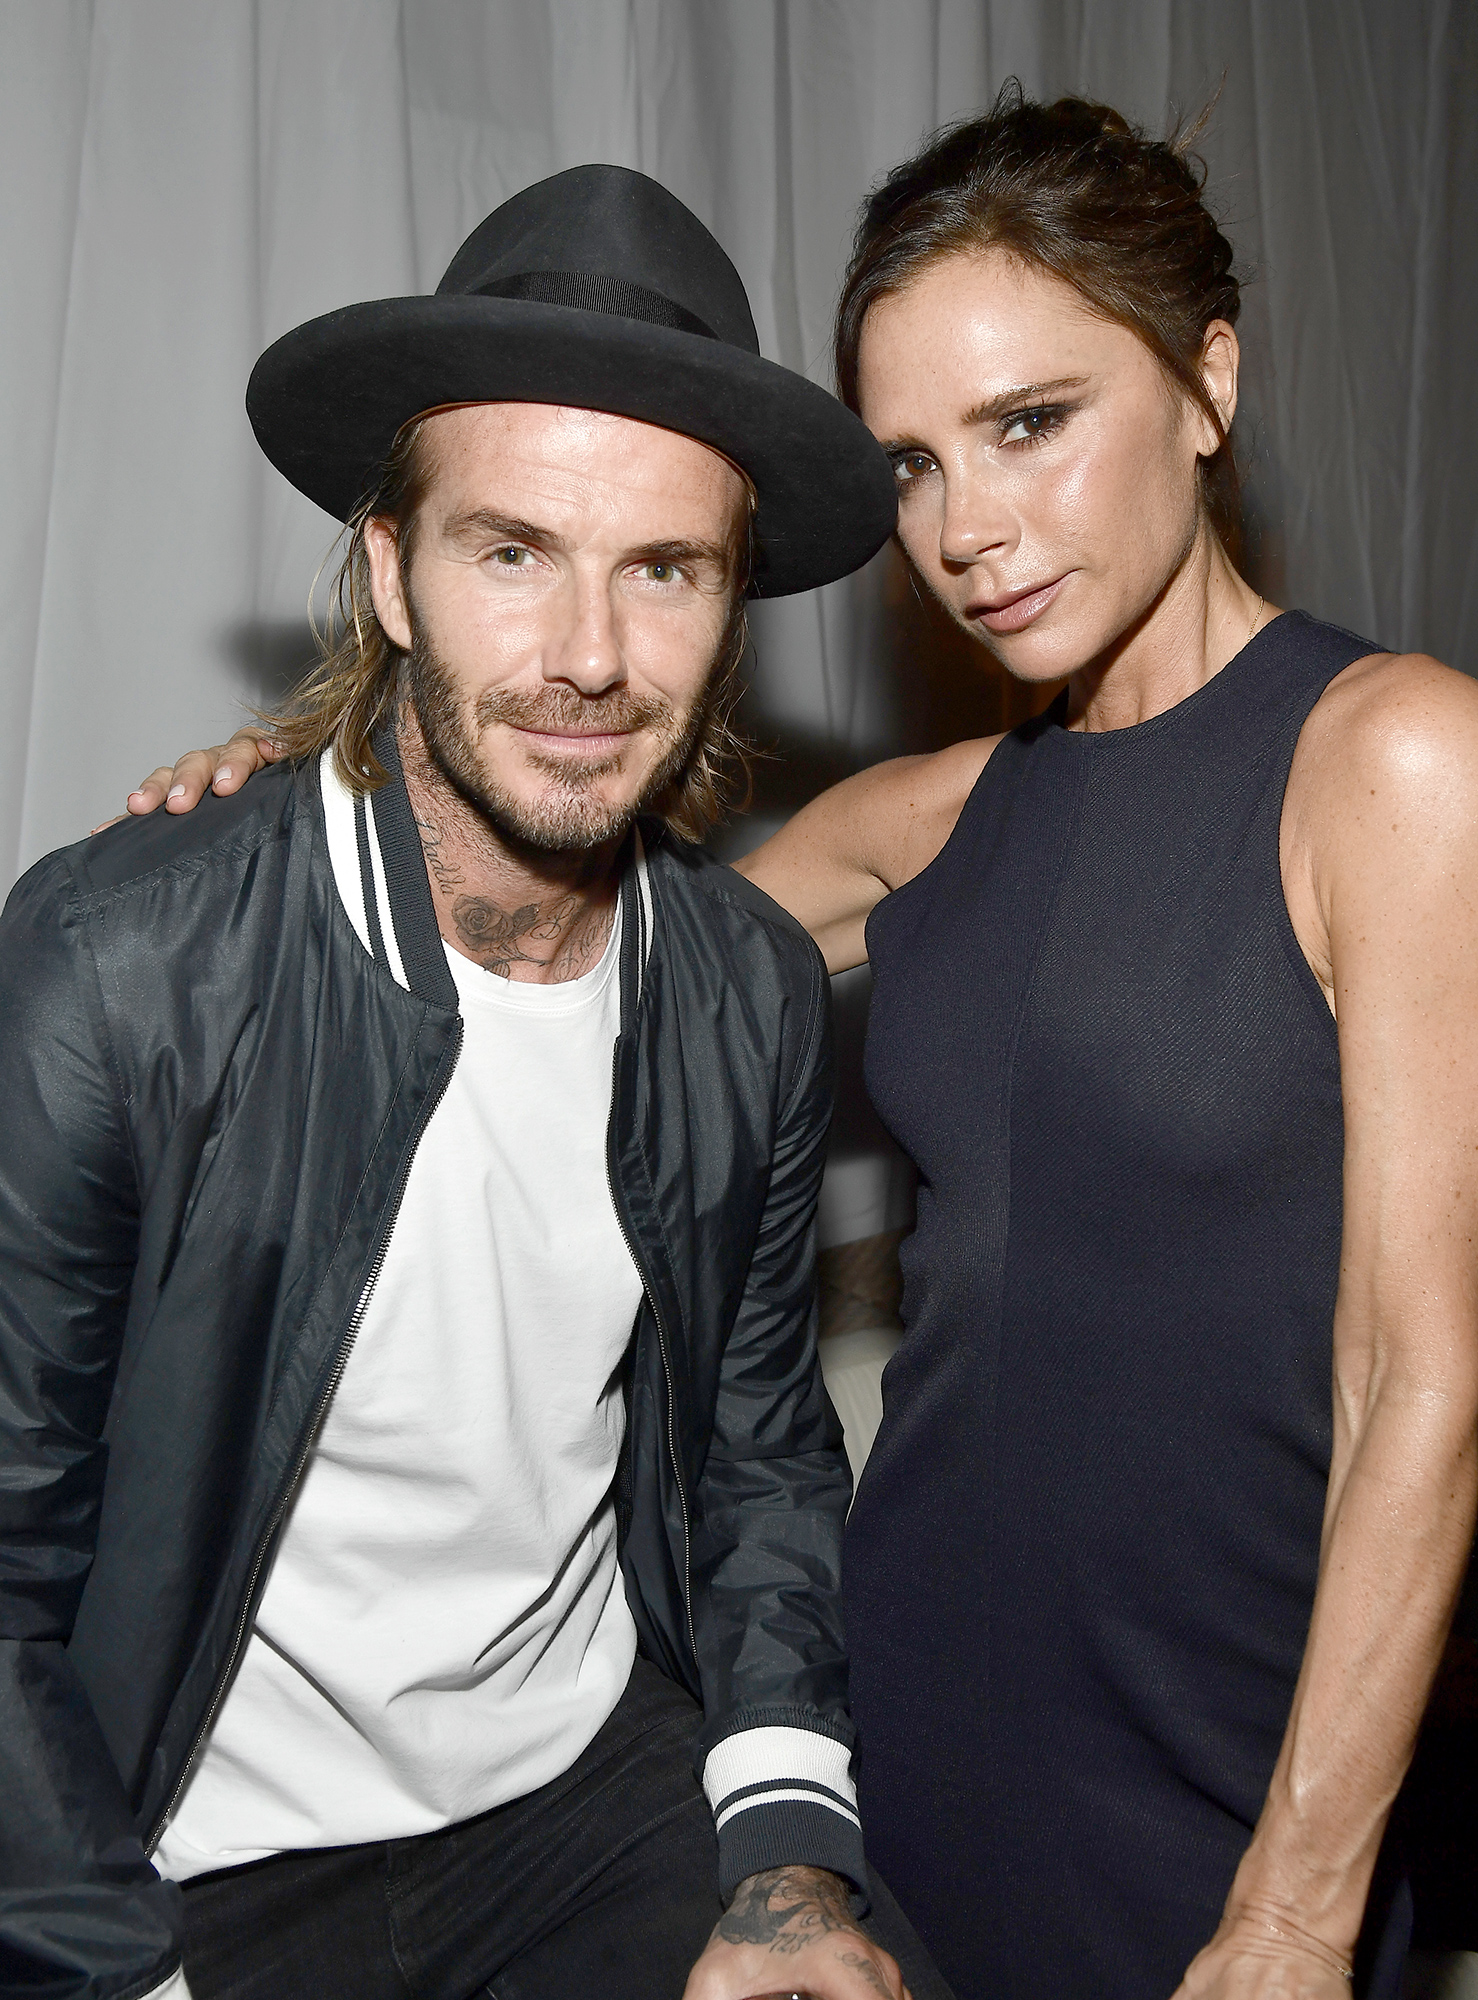 David and Victoria Beckham and Eva Longoria Host The Grand Opening of the New Ken Paves Salon